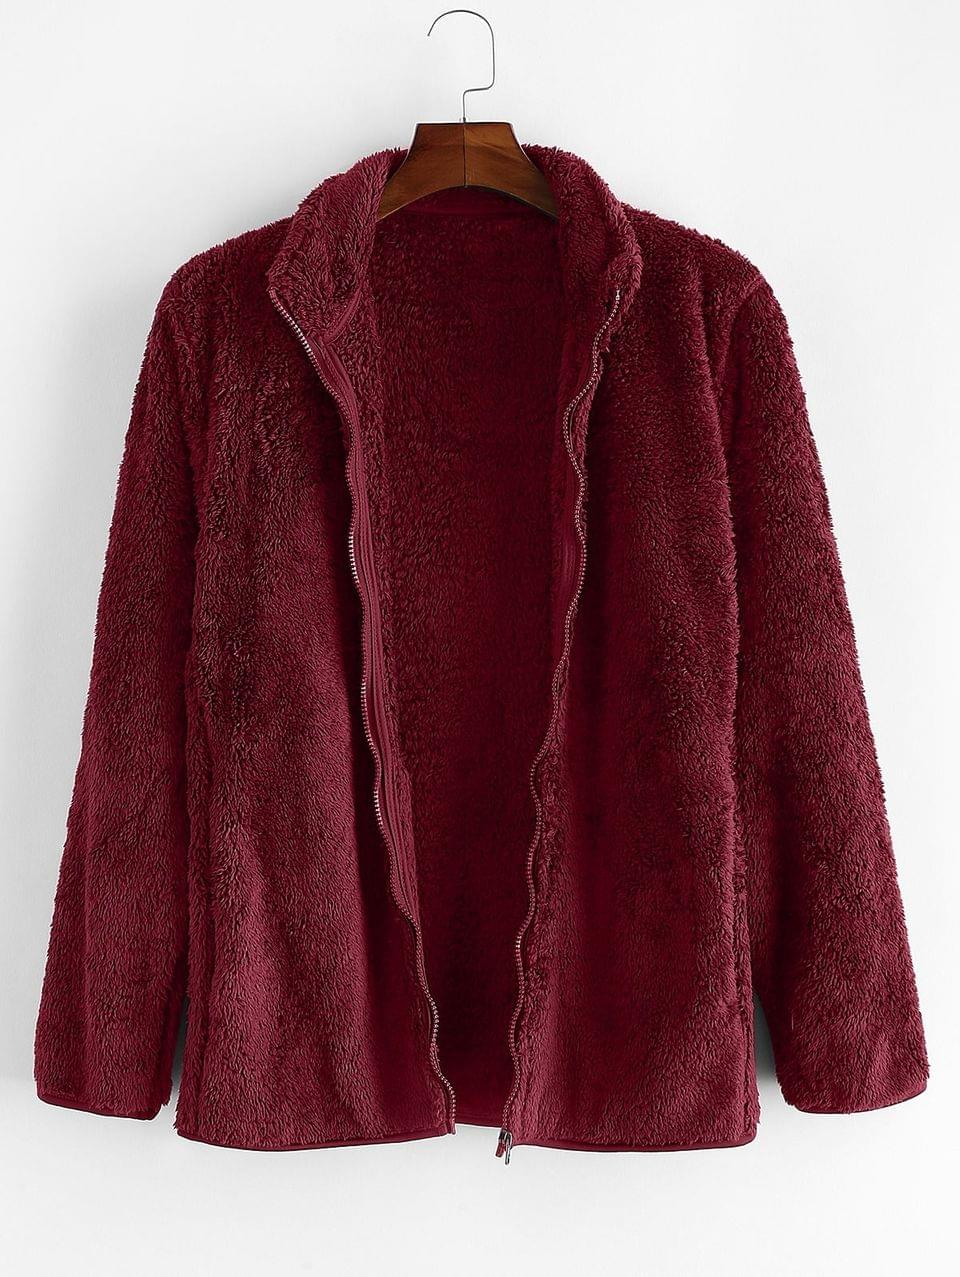 Men's Solid Faux Fur Fuzzy Zip Up Stand Collar Jacket - Firebrick L